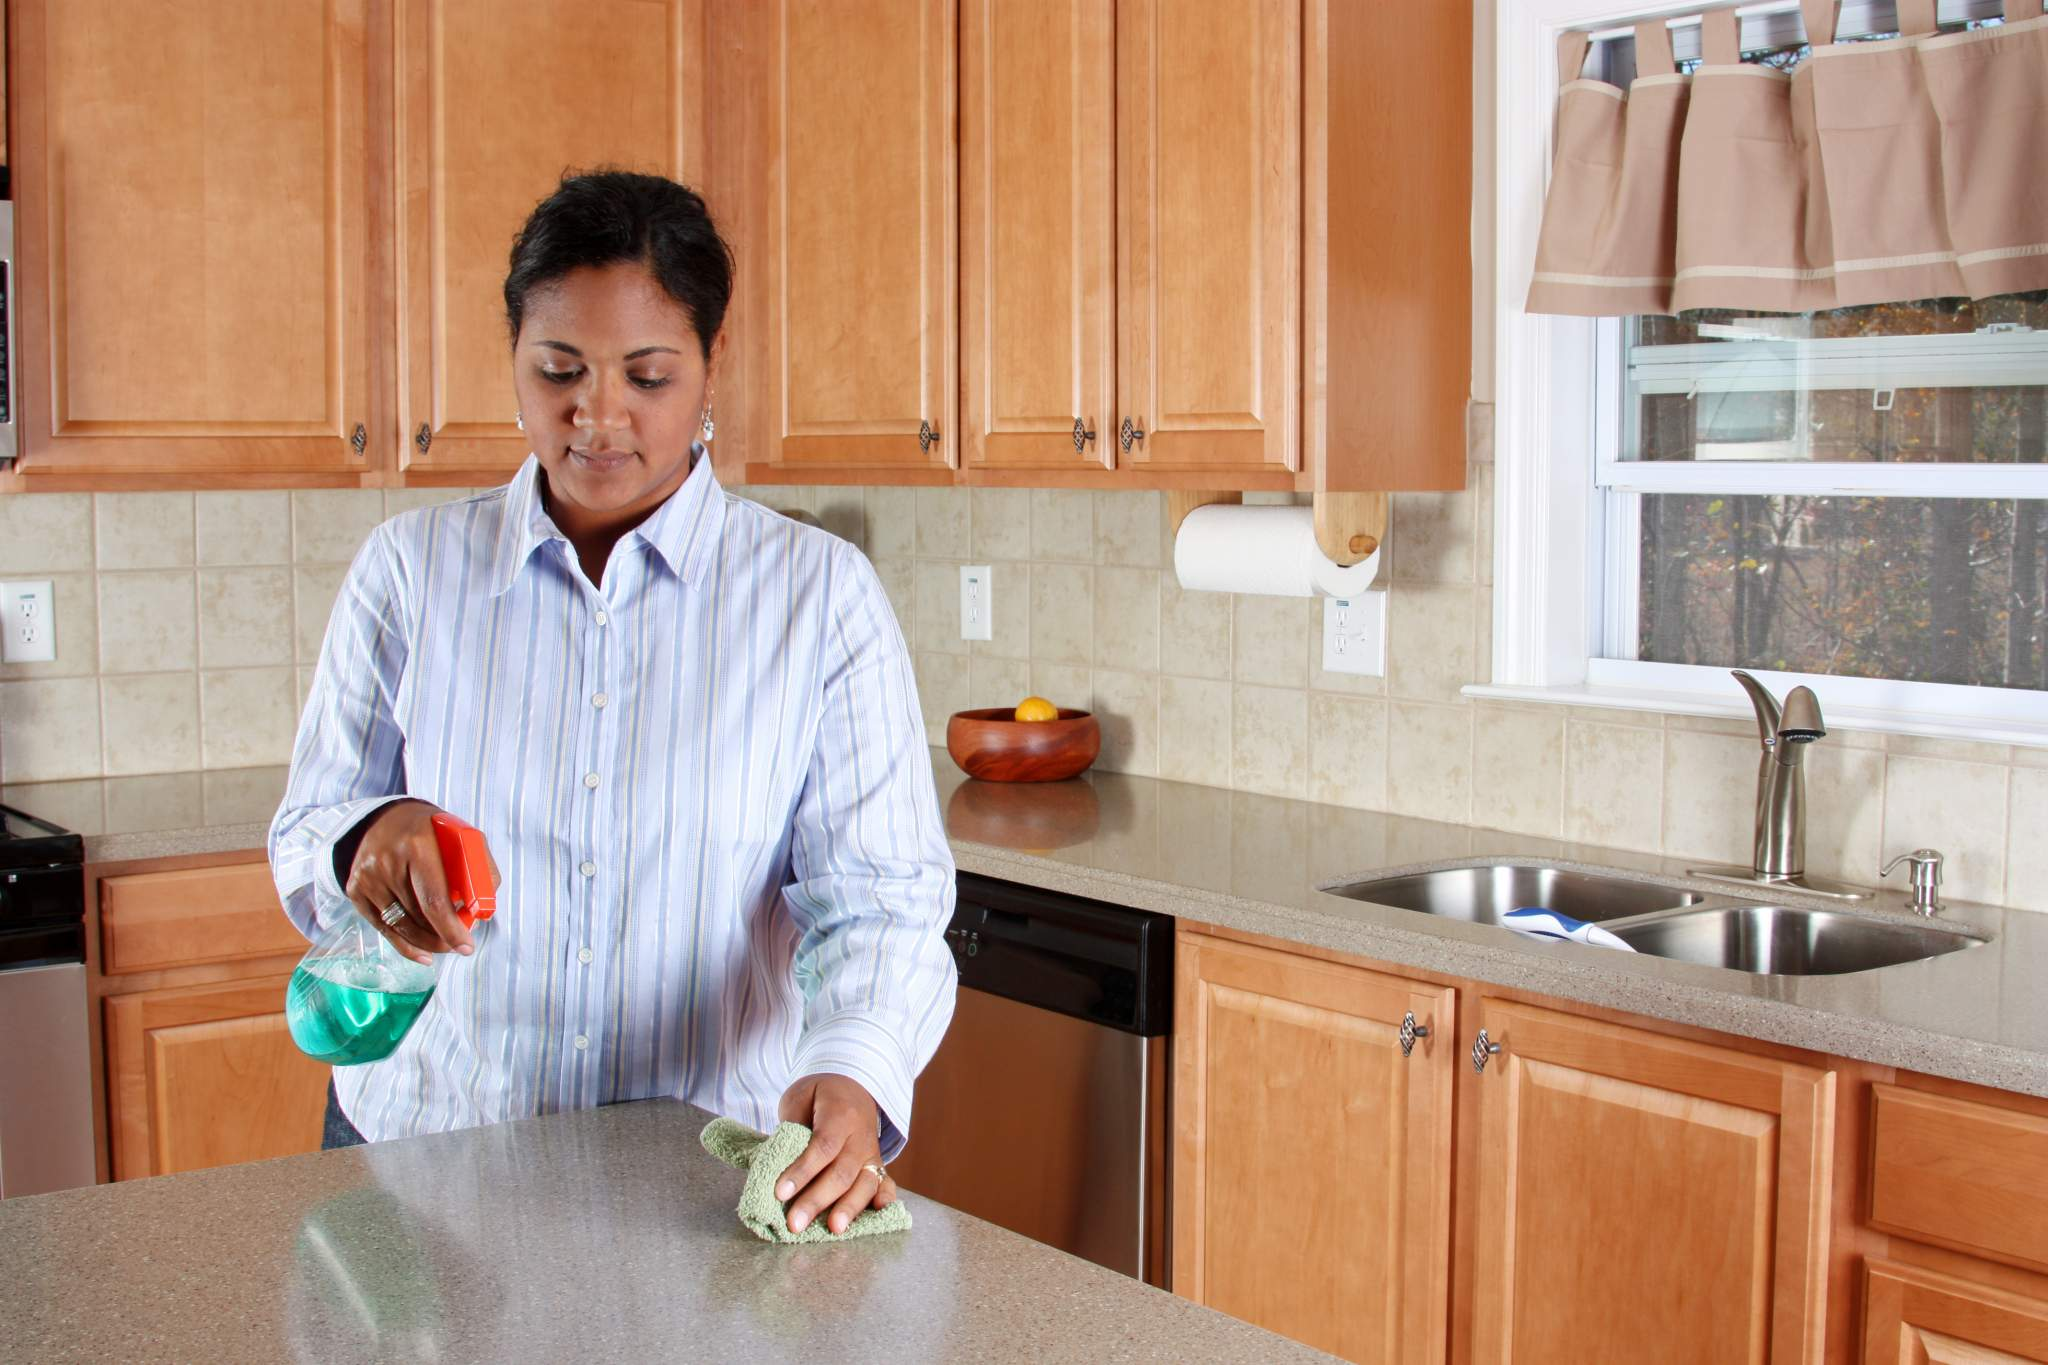 Cleaning and Disinfecting Granite Countertops